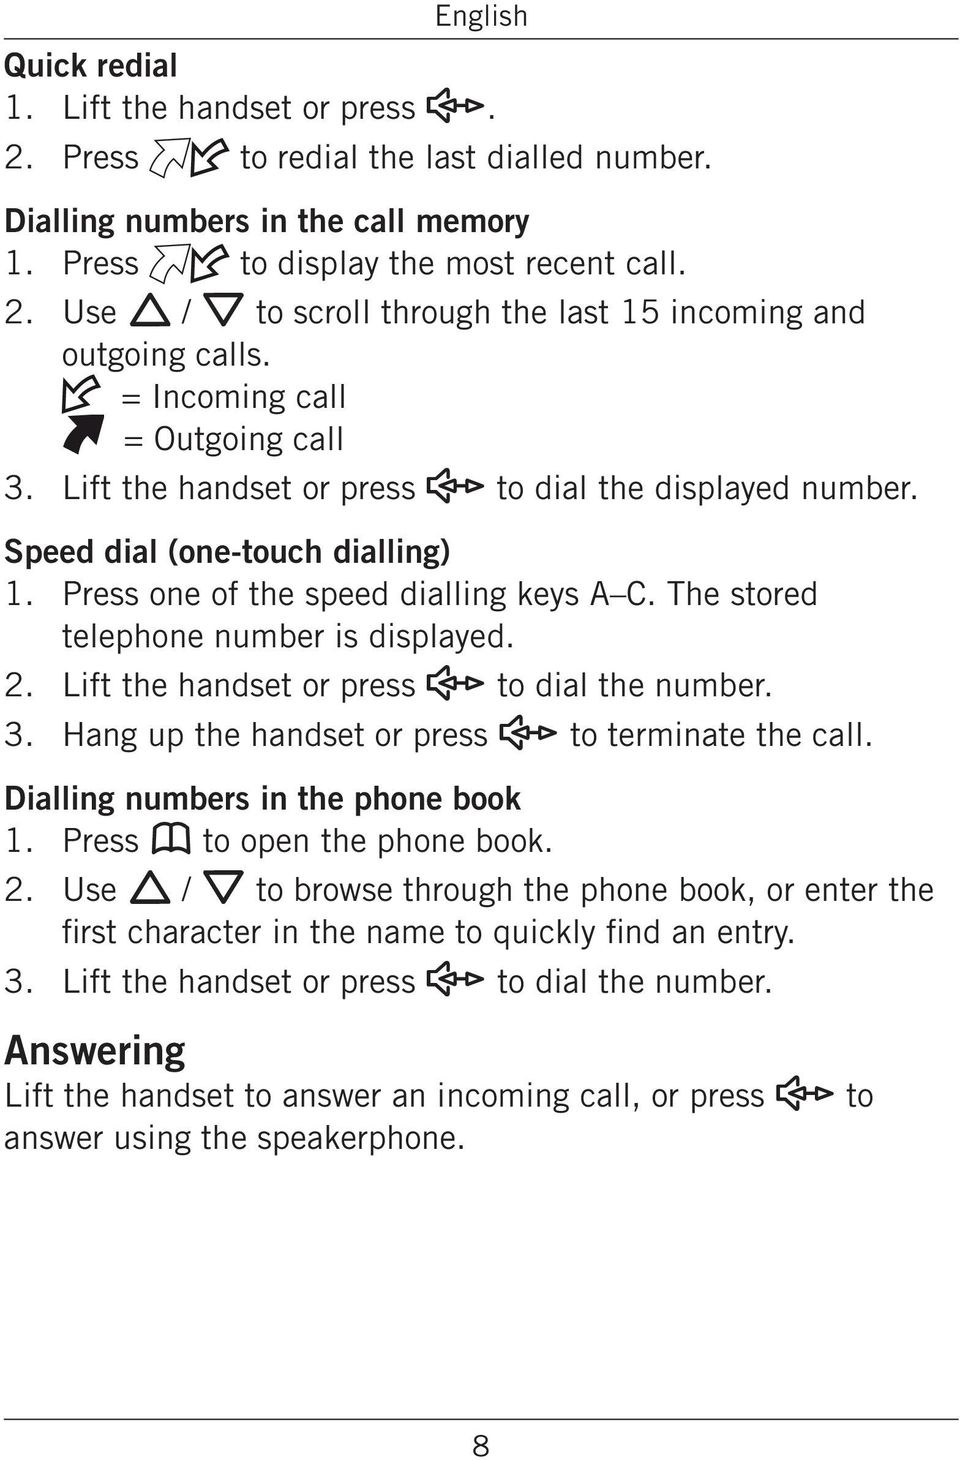 A C The stored telephone number is displayed 2 3 Lift the handset or press s to dial the number Hang up the handset or press s to terminate the call Dialling numbers in the phone book 1 Press b to